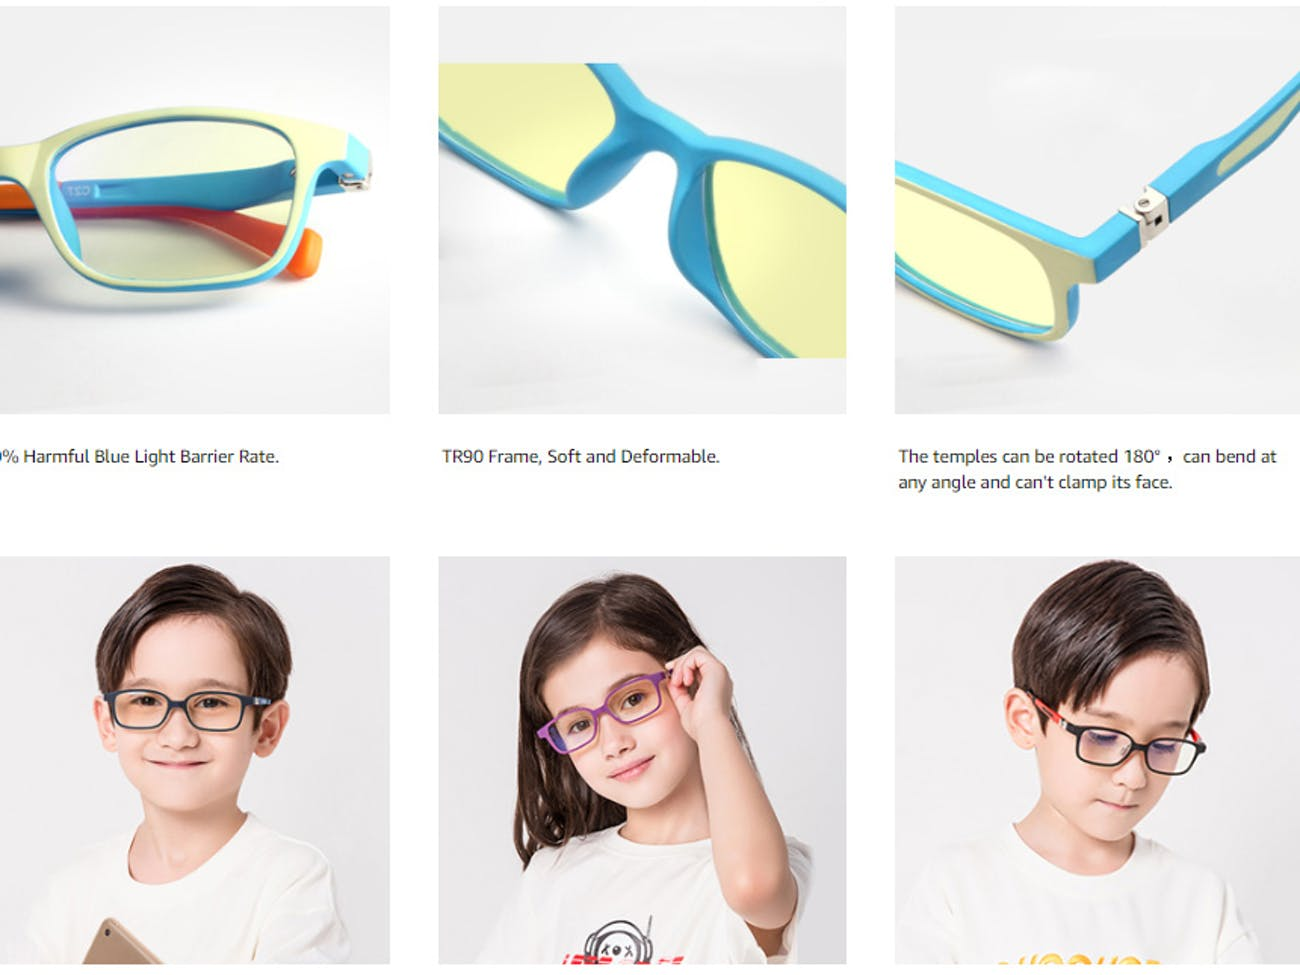 The Peteye PC glasses are cute, even when you aren't wearing them